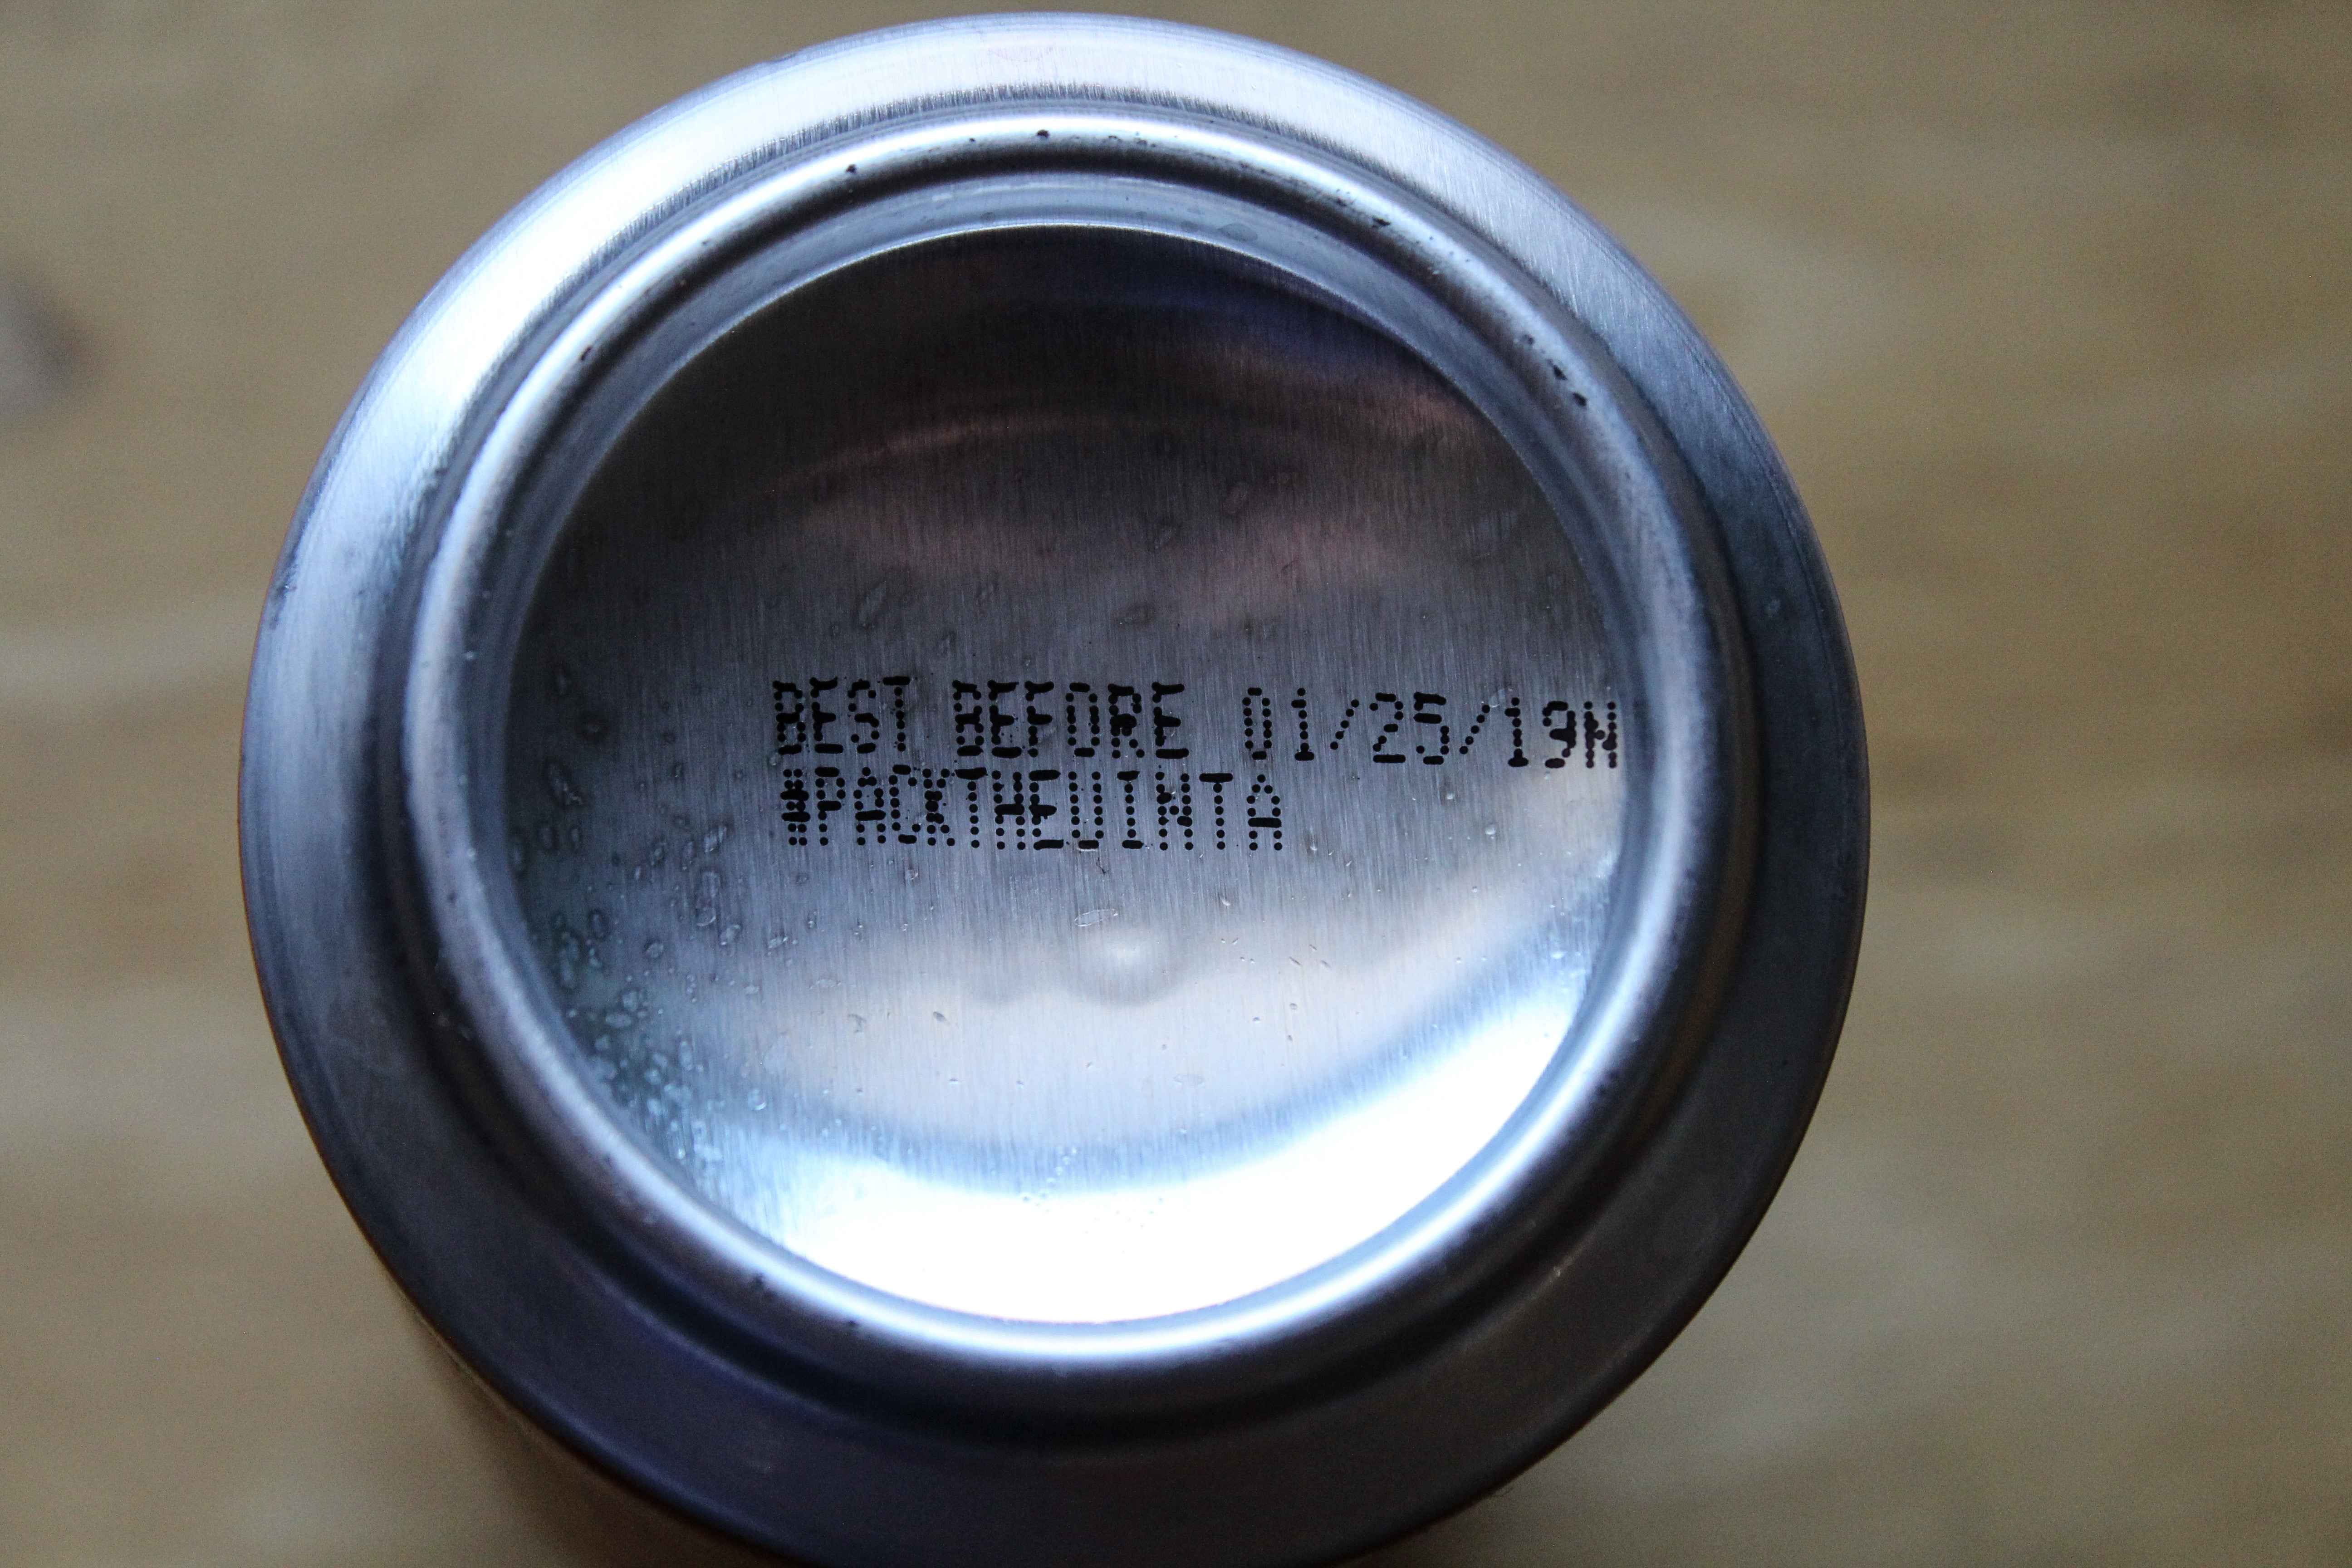 Date expiration soda can Does Soda